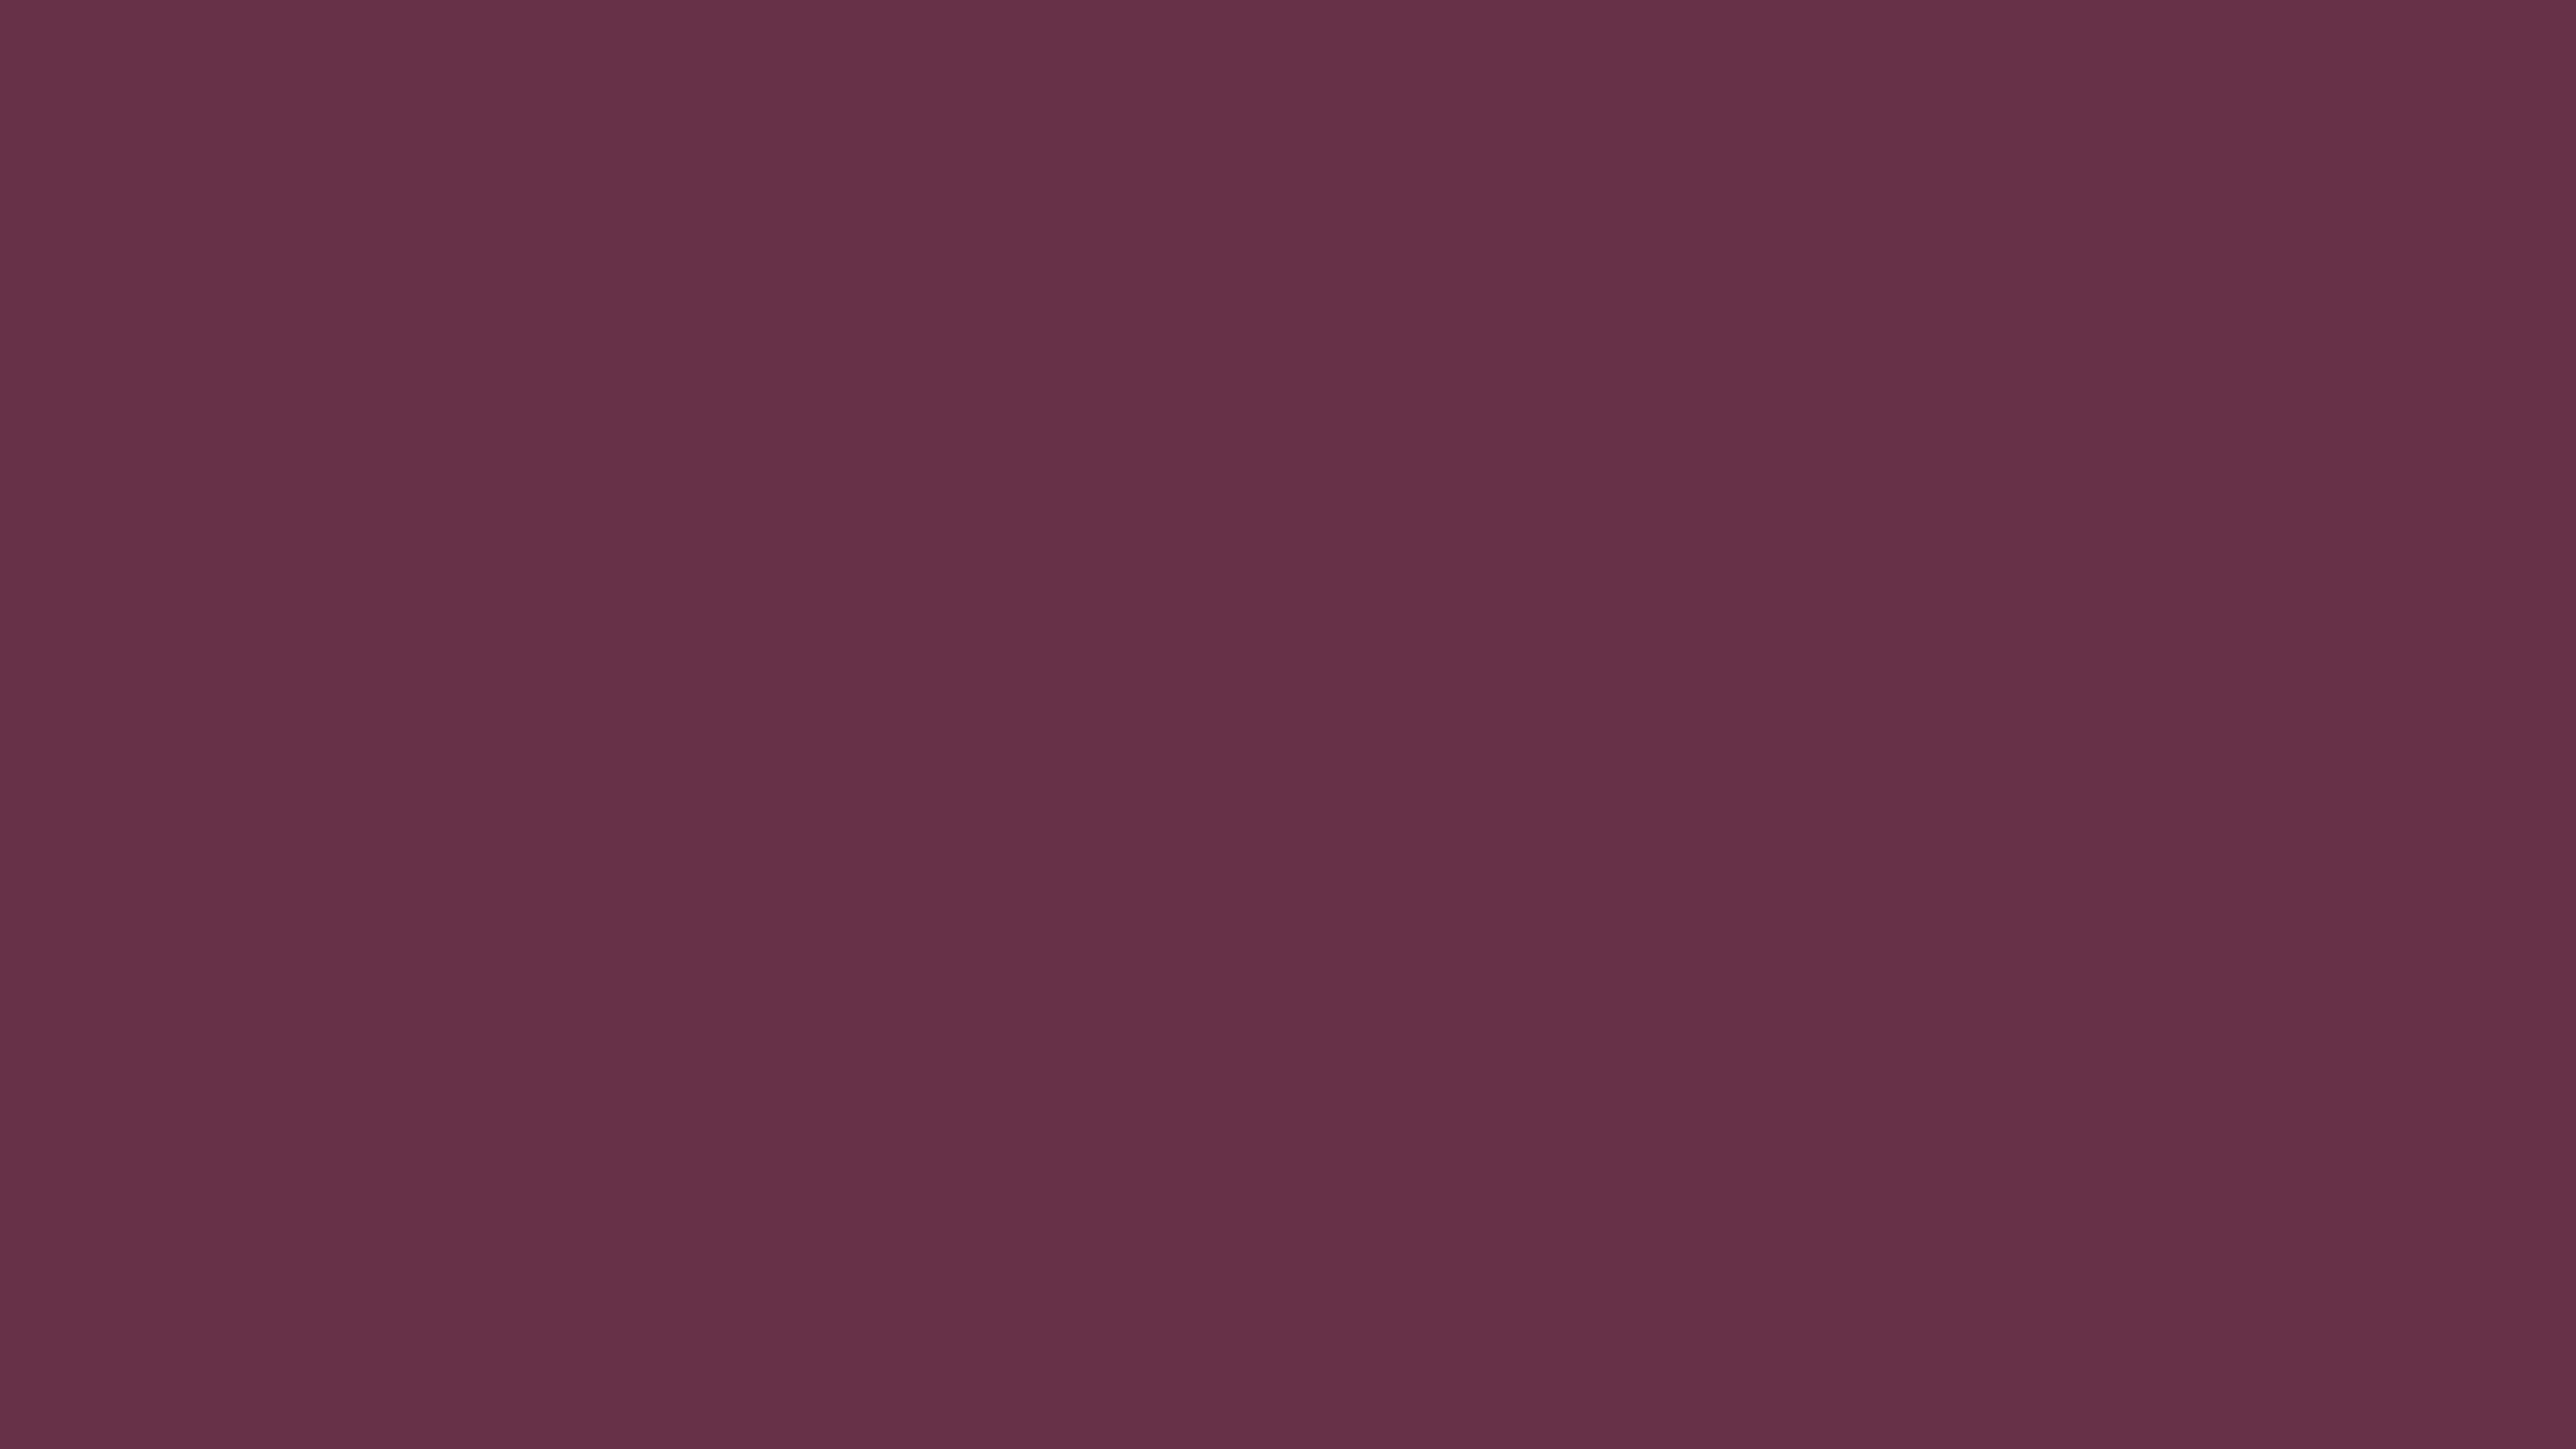 4096x2304 Old Mauve Solid Color Background